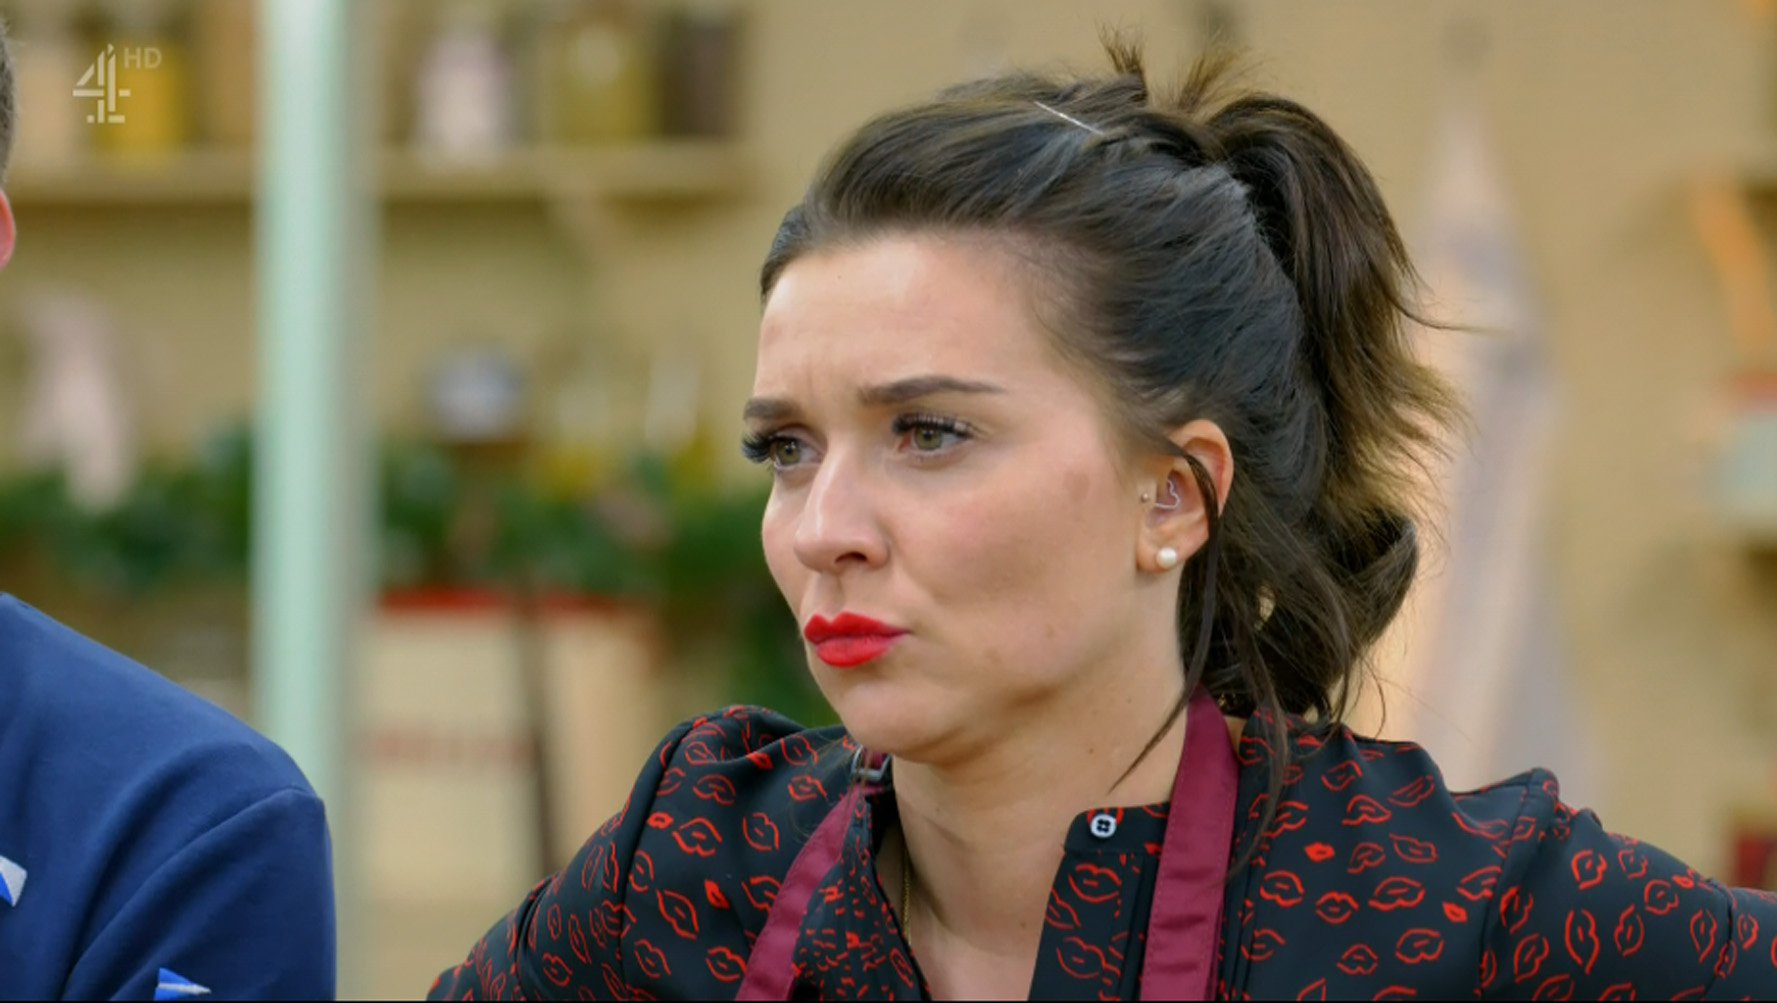 GBBO winner Candice Brown hits back at 'violent threats' from viewers after she loses to out to Steven Carter-Bailey in New Year special